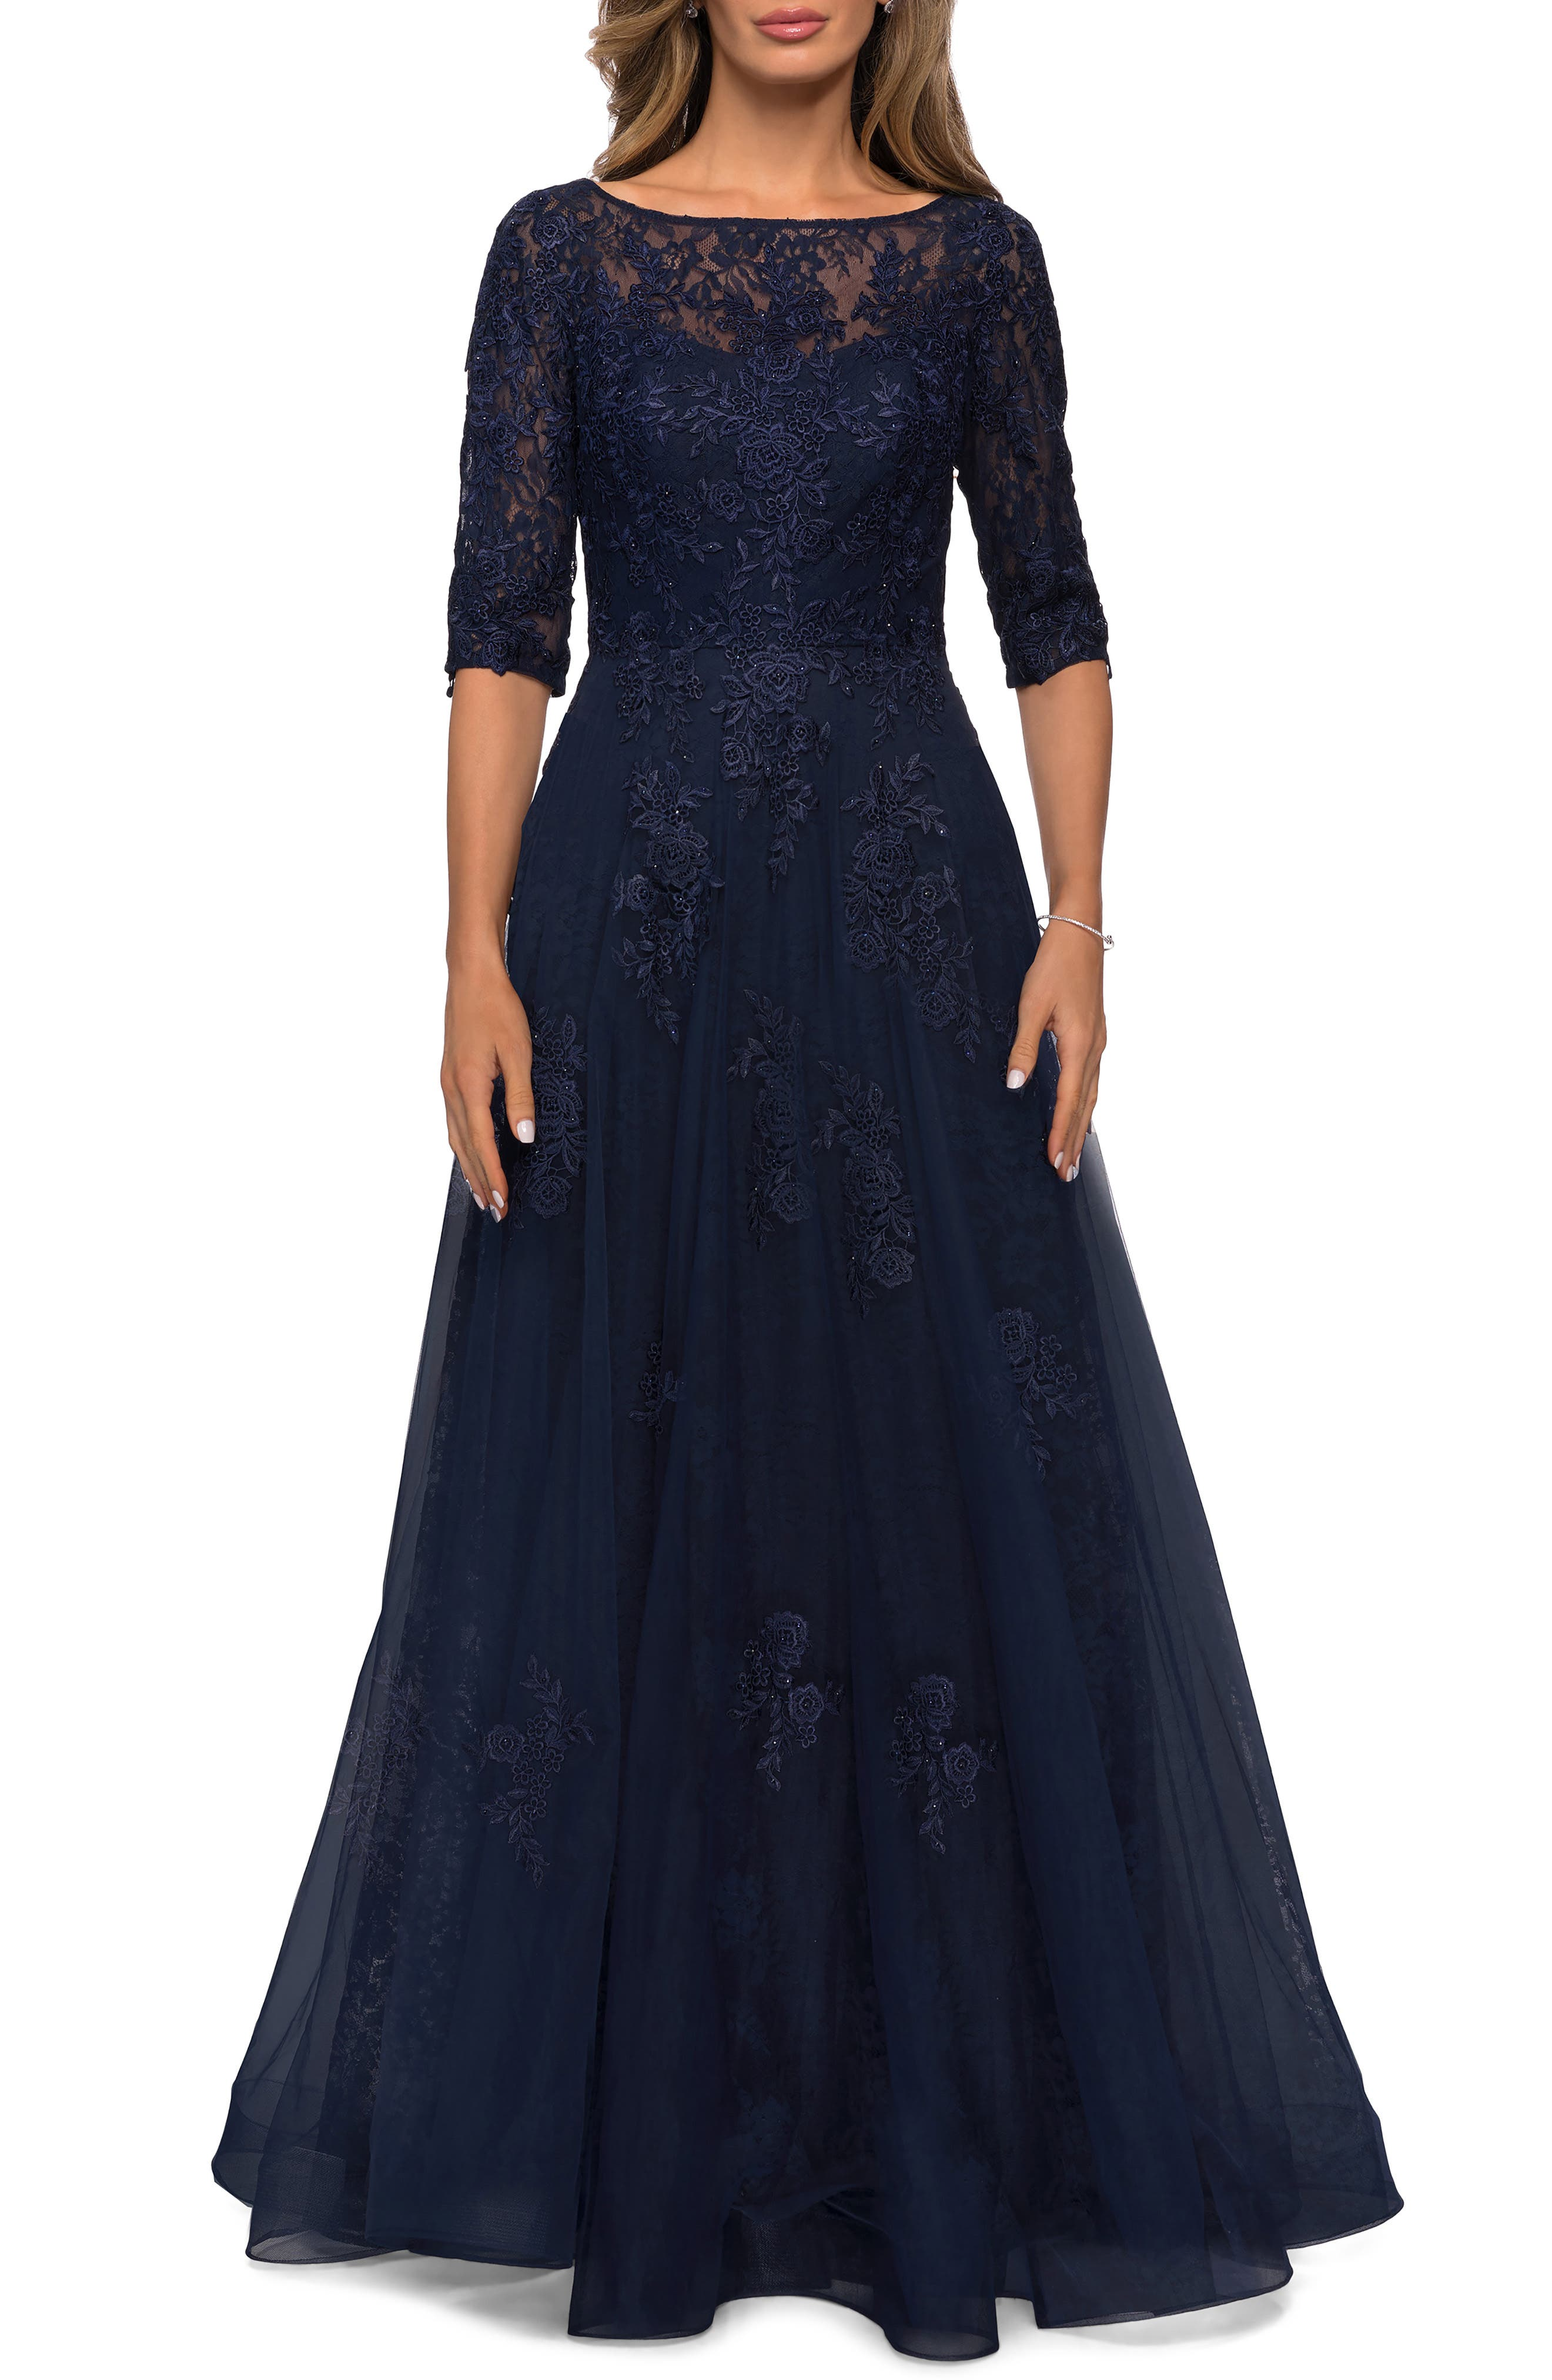 1950s Formal Dresses & Evening Gowns to Buy Womens La Femme Floral Lace  Tulle Gown Size 8 - Blue $538.00 AT vintagedancer.com